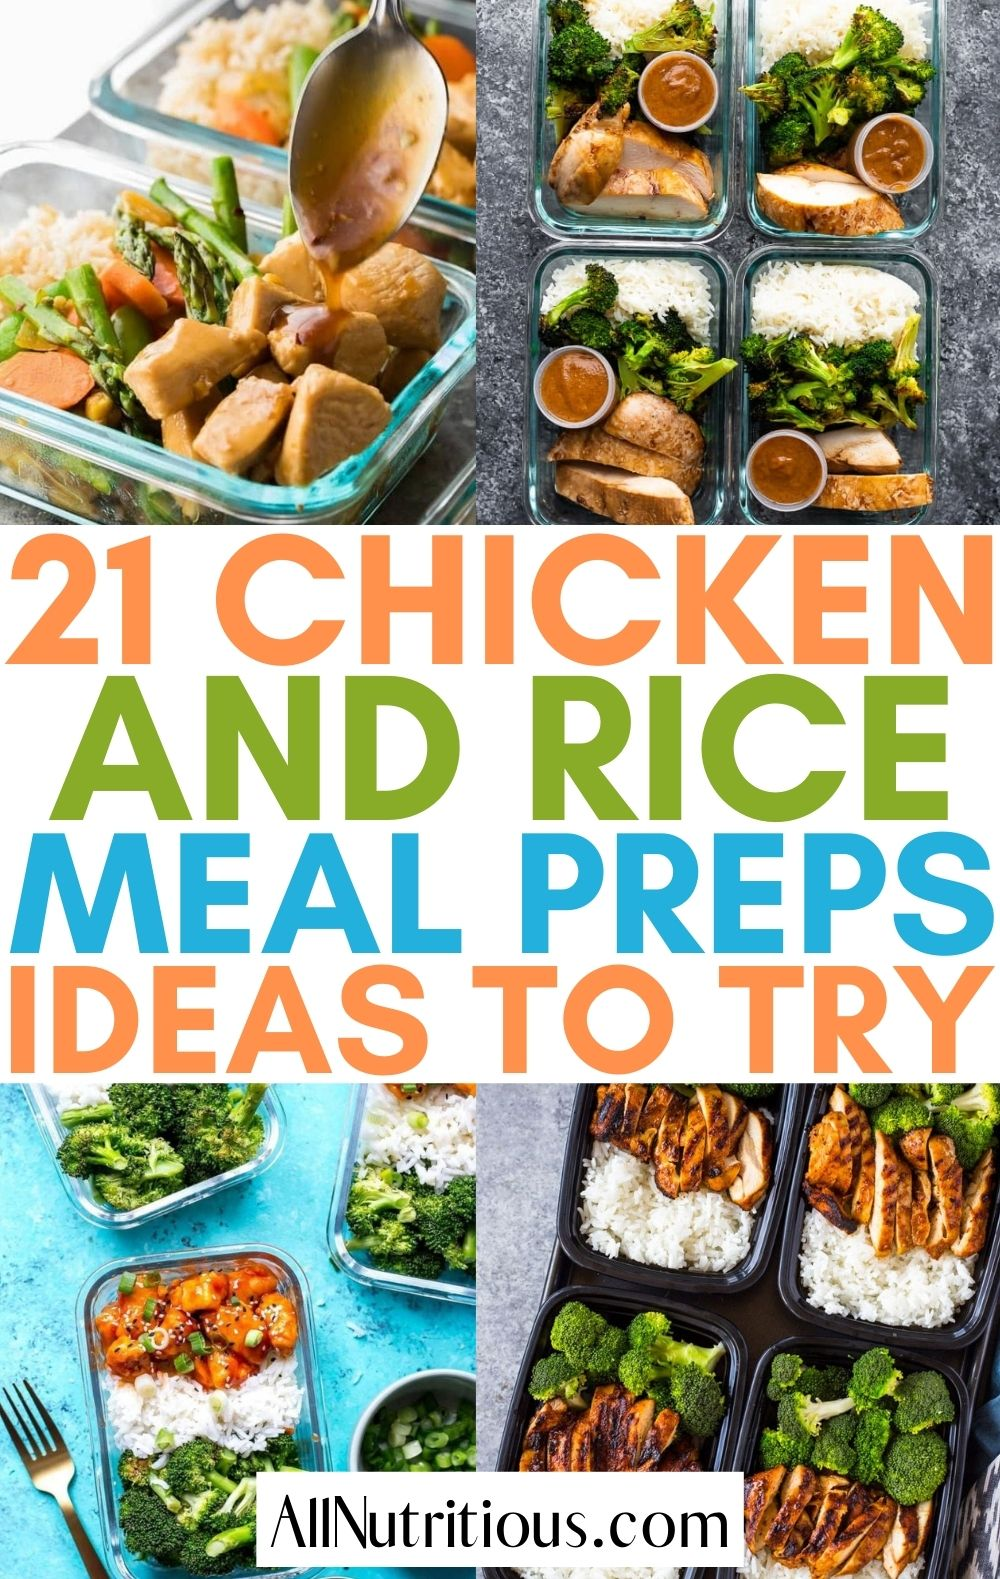 chicken and rice meal preps